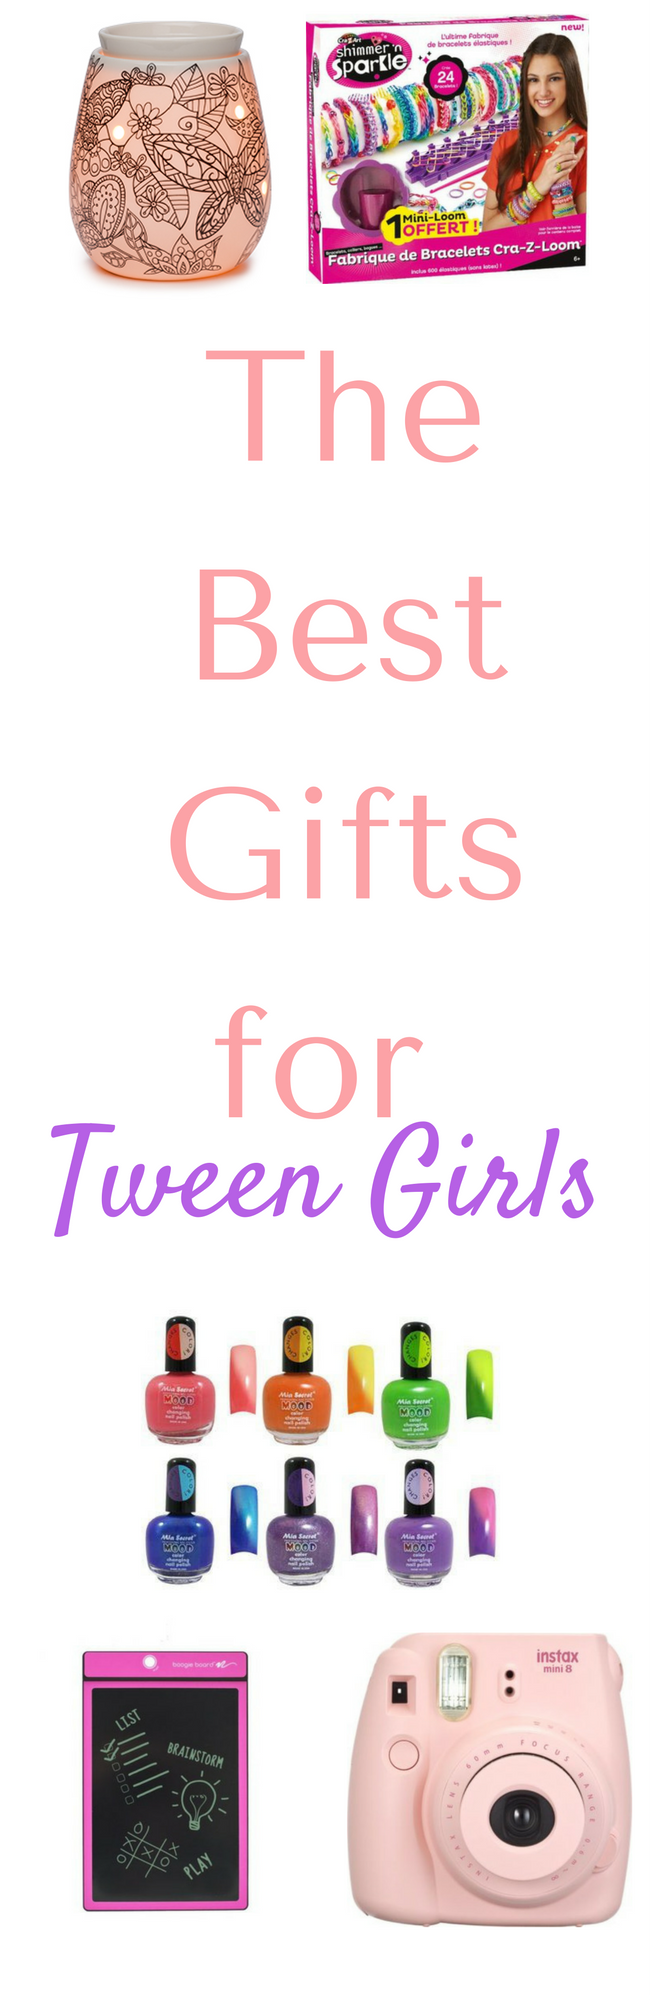 The best gift ideas for tween girls! via @clarkscondensed